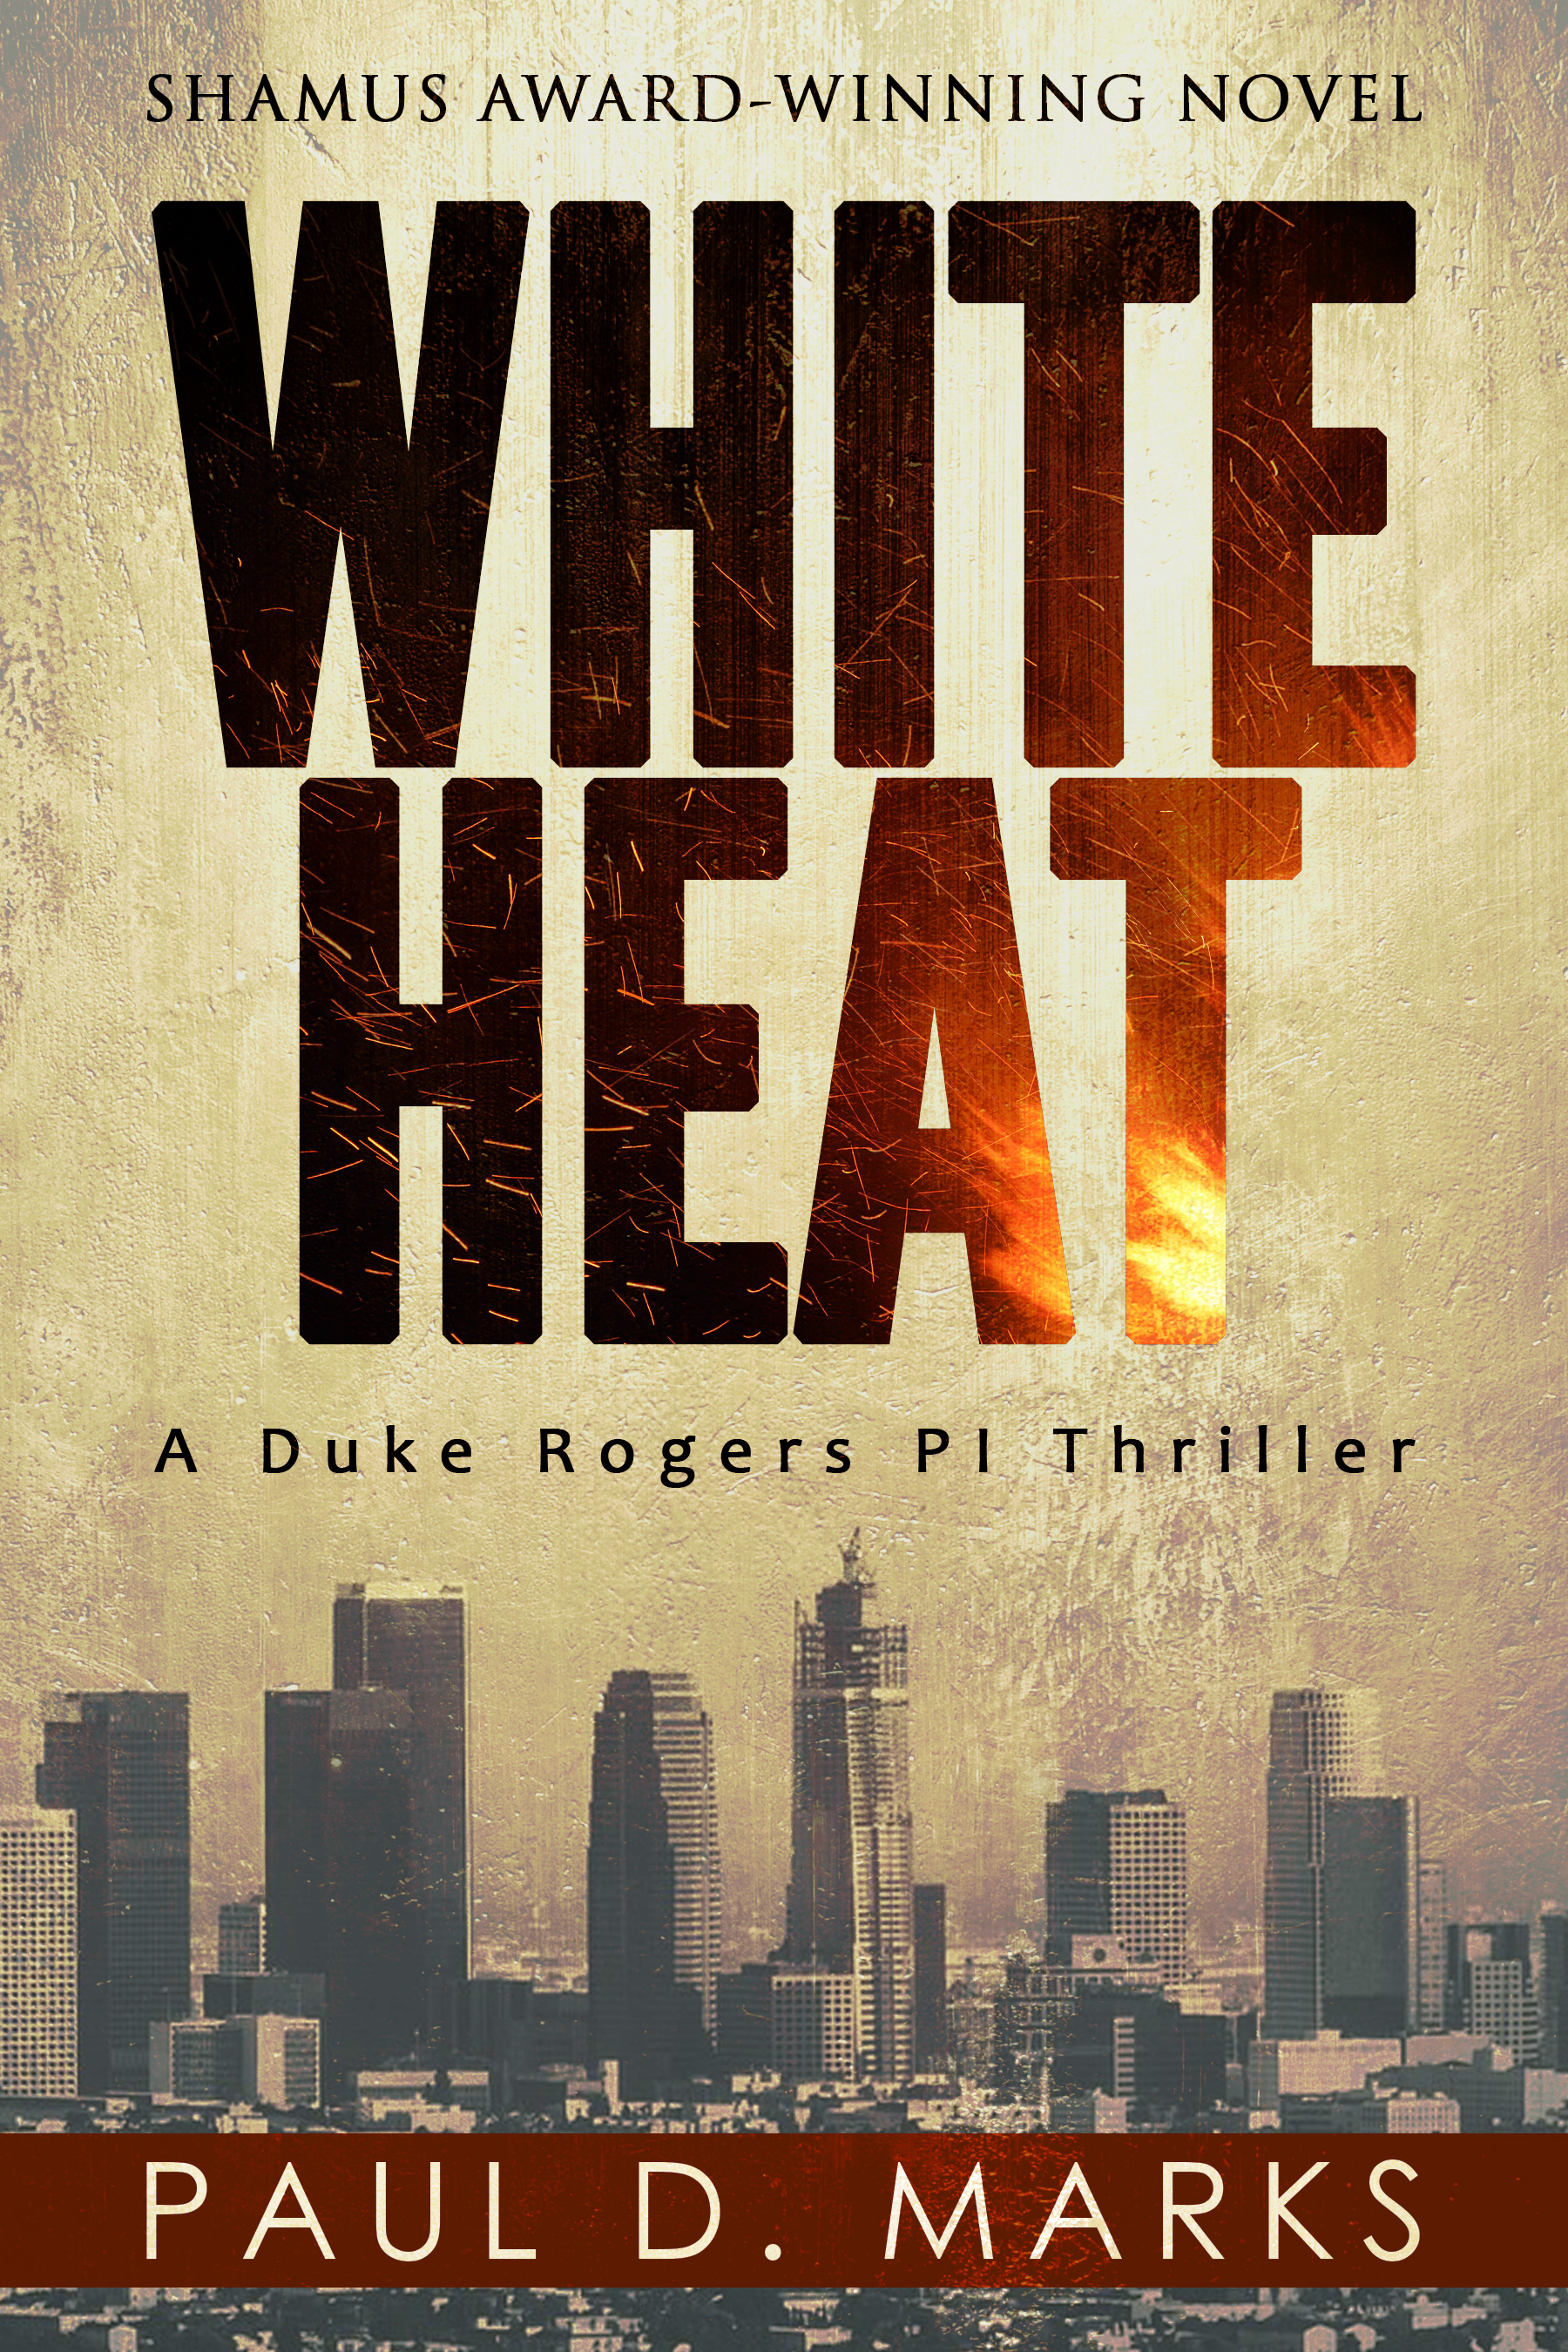 White Heat by Paul D. Marks